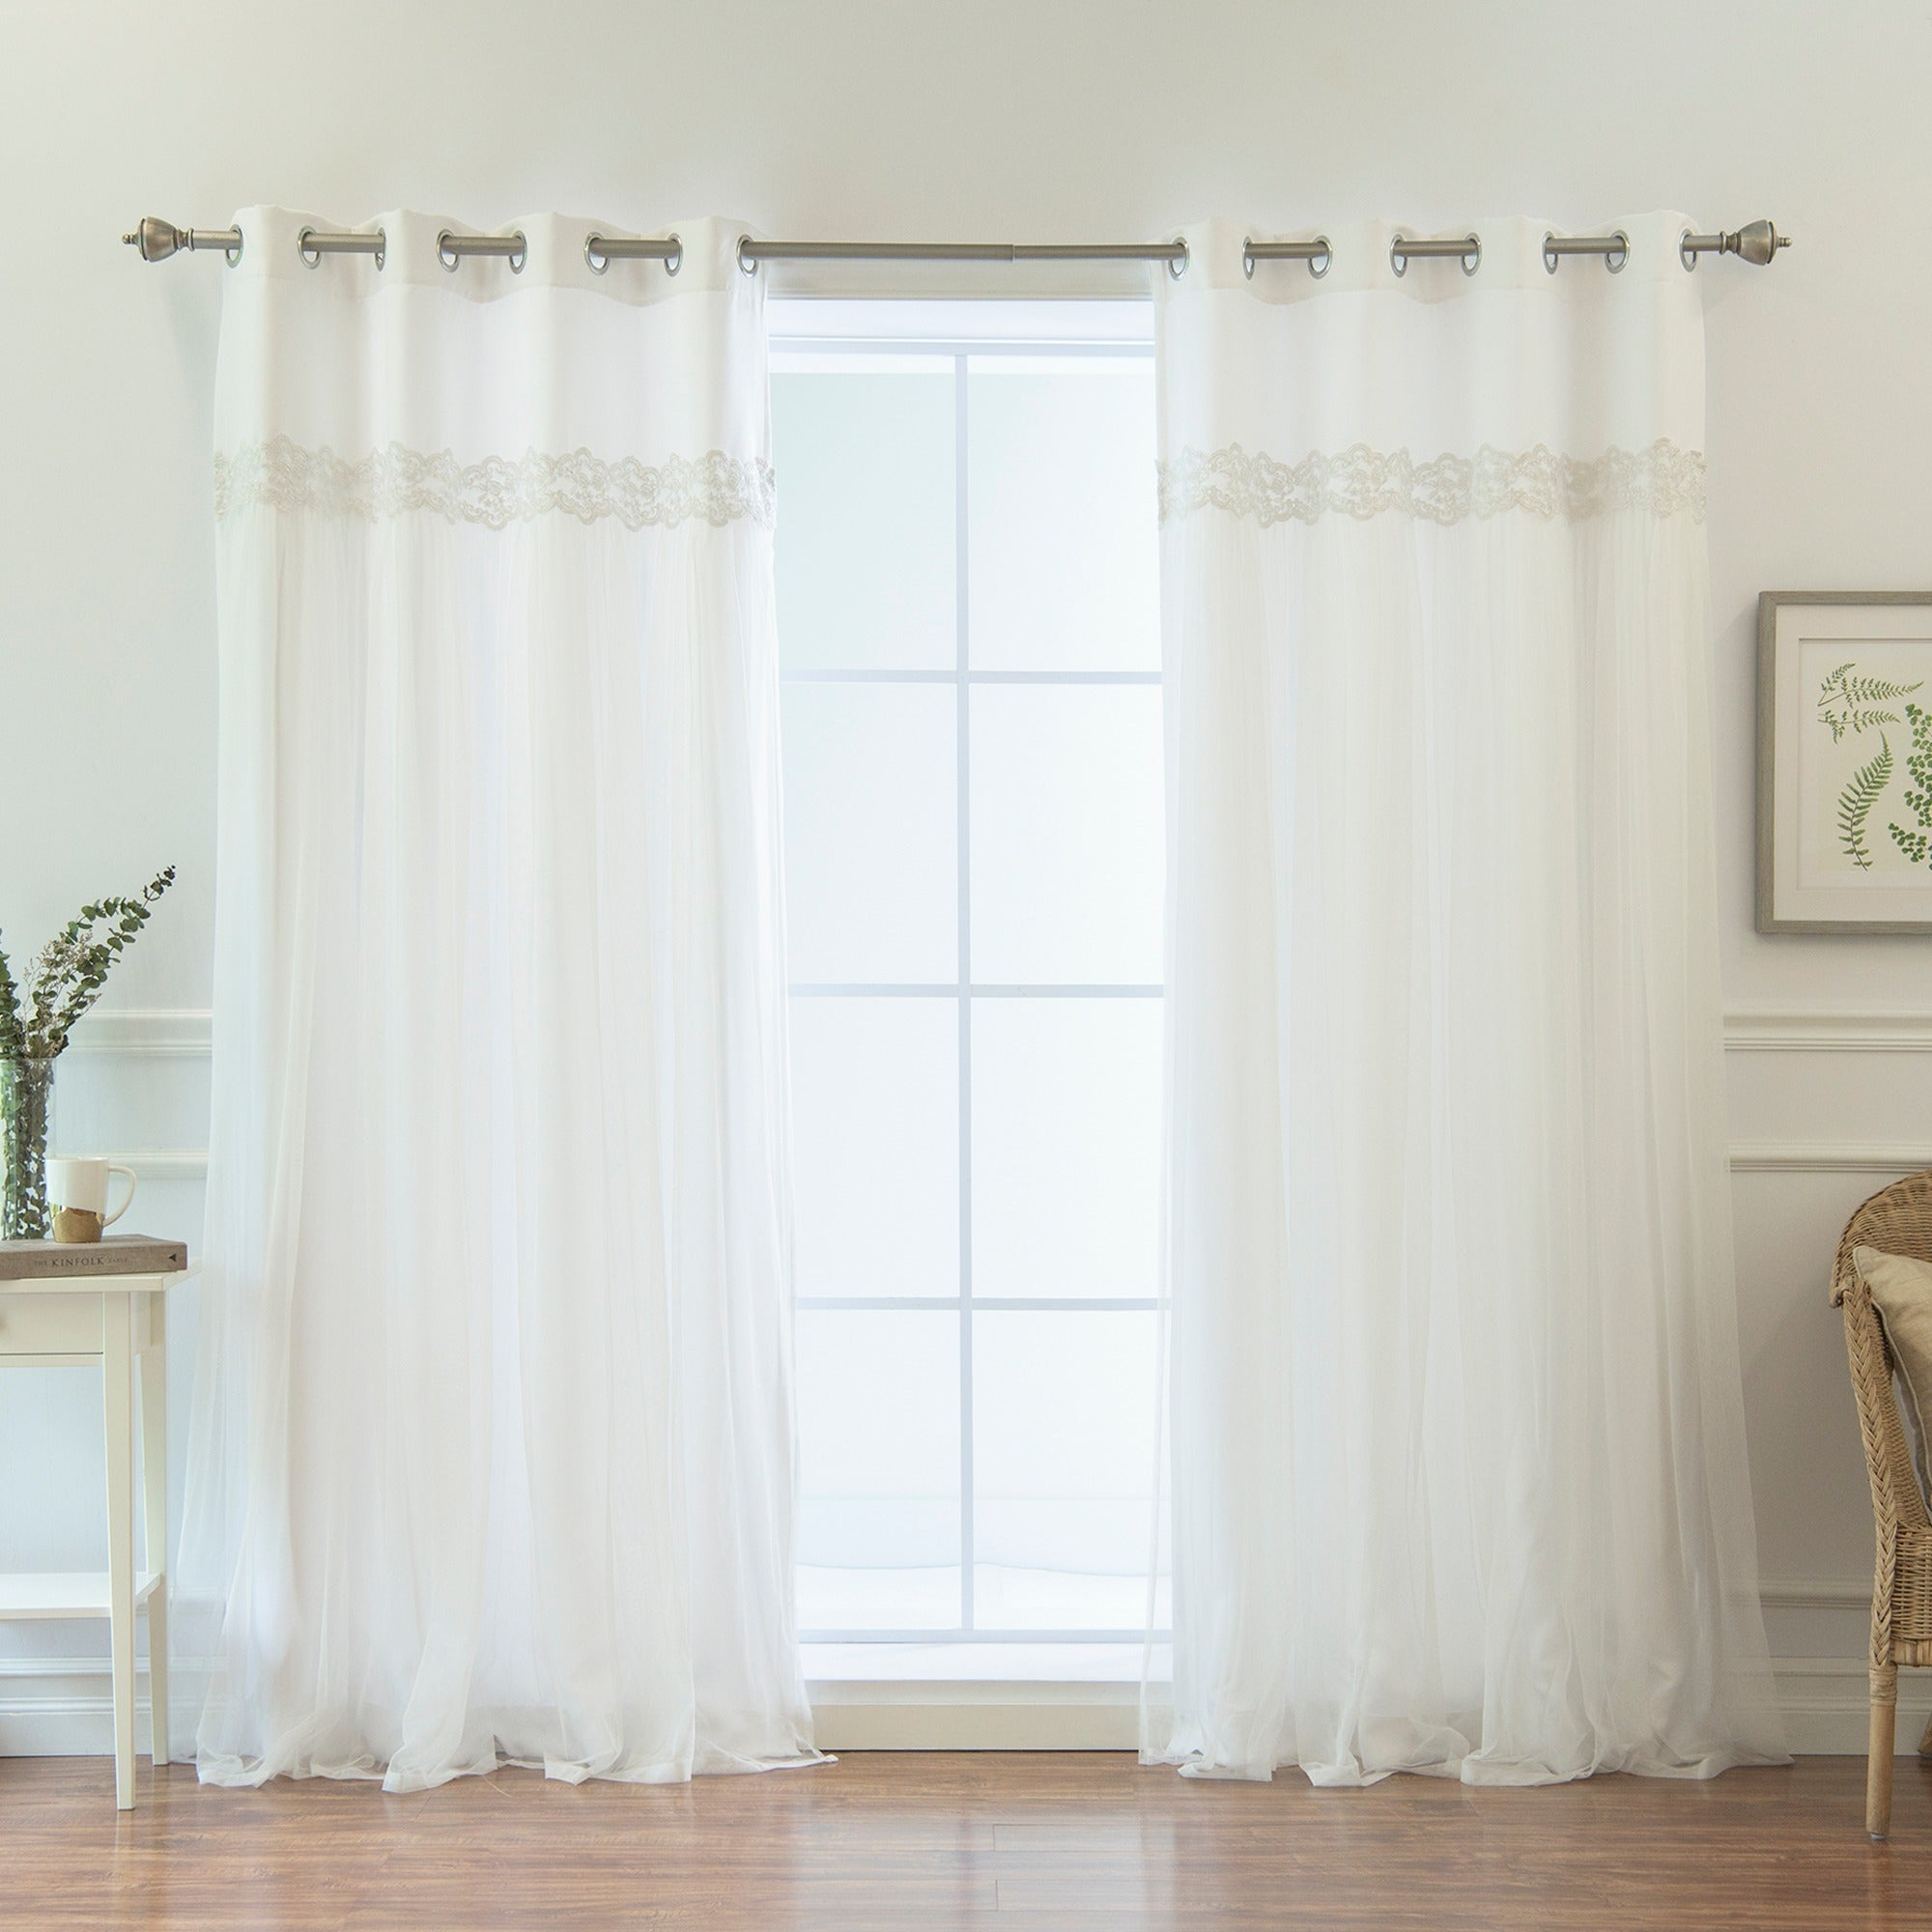 Aurora Home Solid White Lace Overlay Grommet Top Curtain Panel Pair – 52 X 84 Inside Solid Grommet Top Curtain Panel Pairs (View 6 of 30)